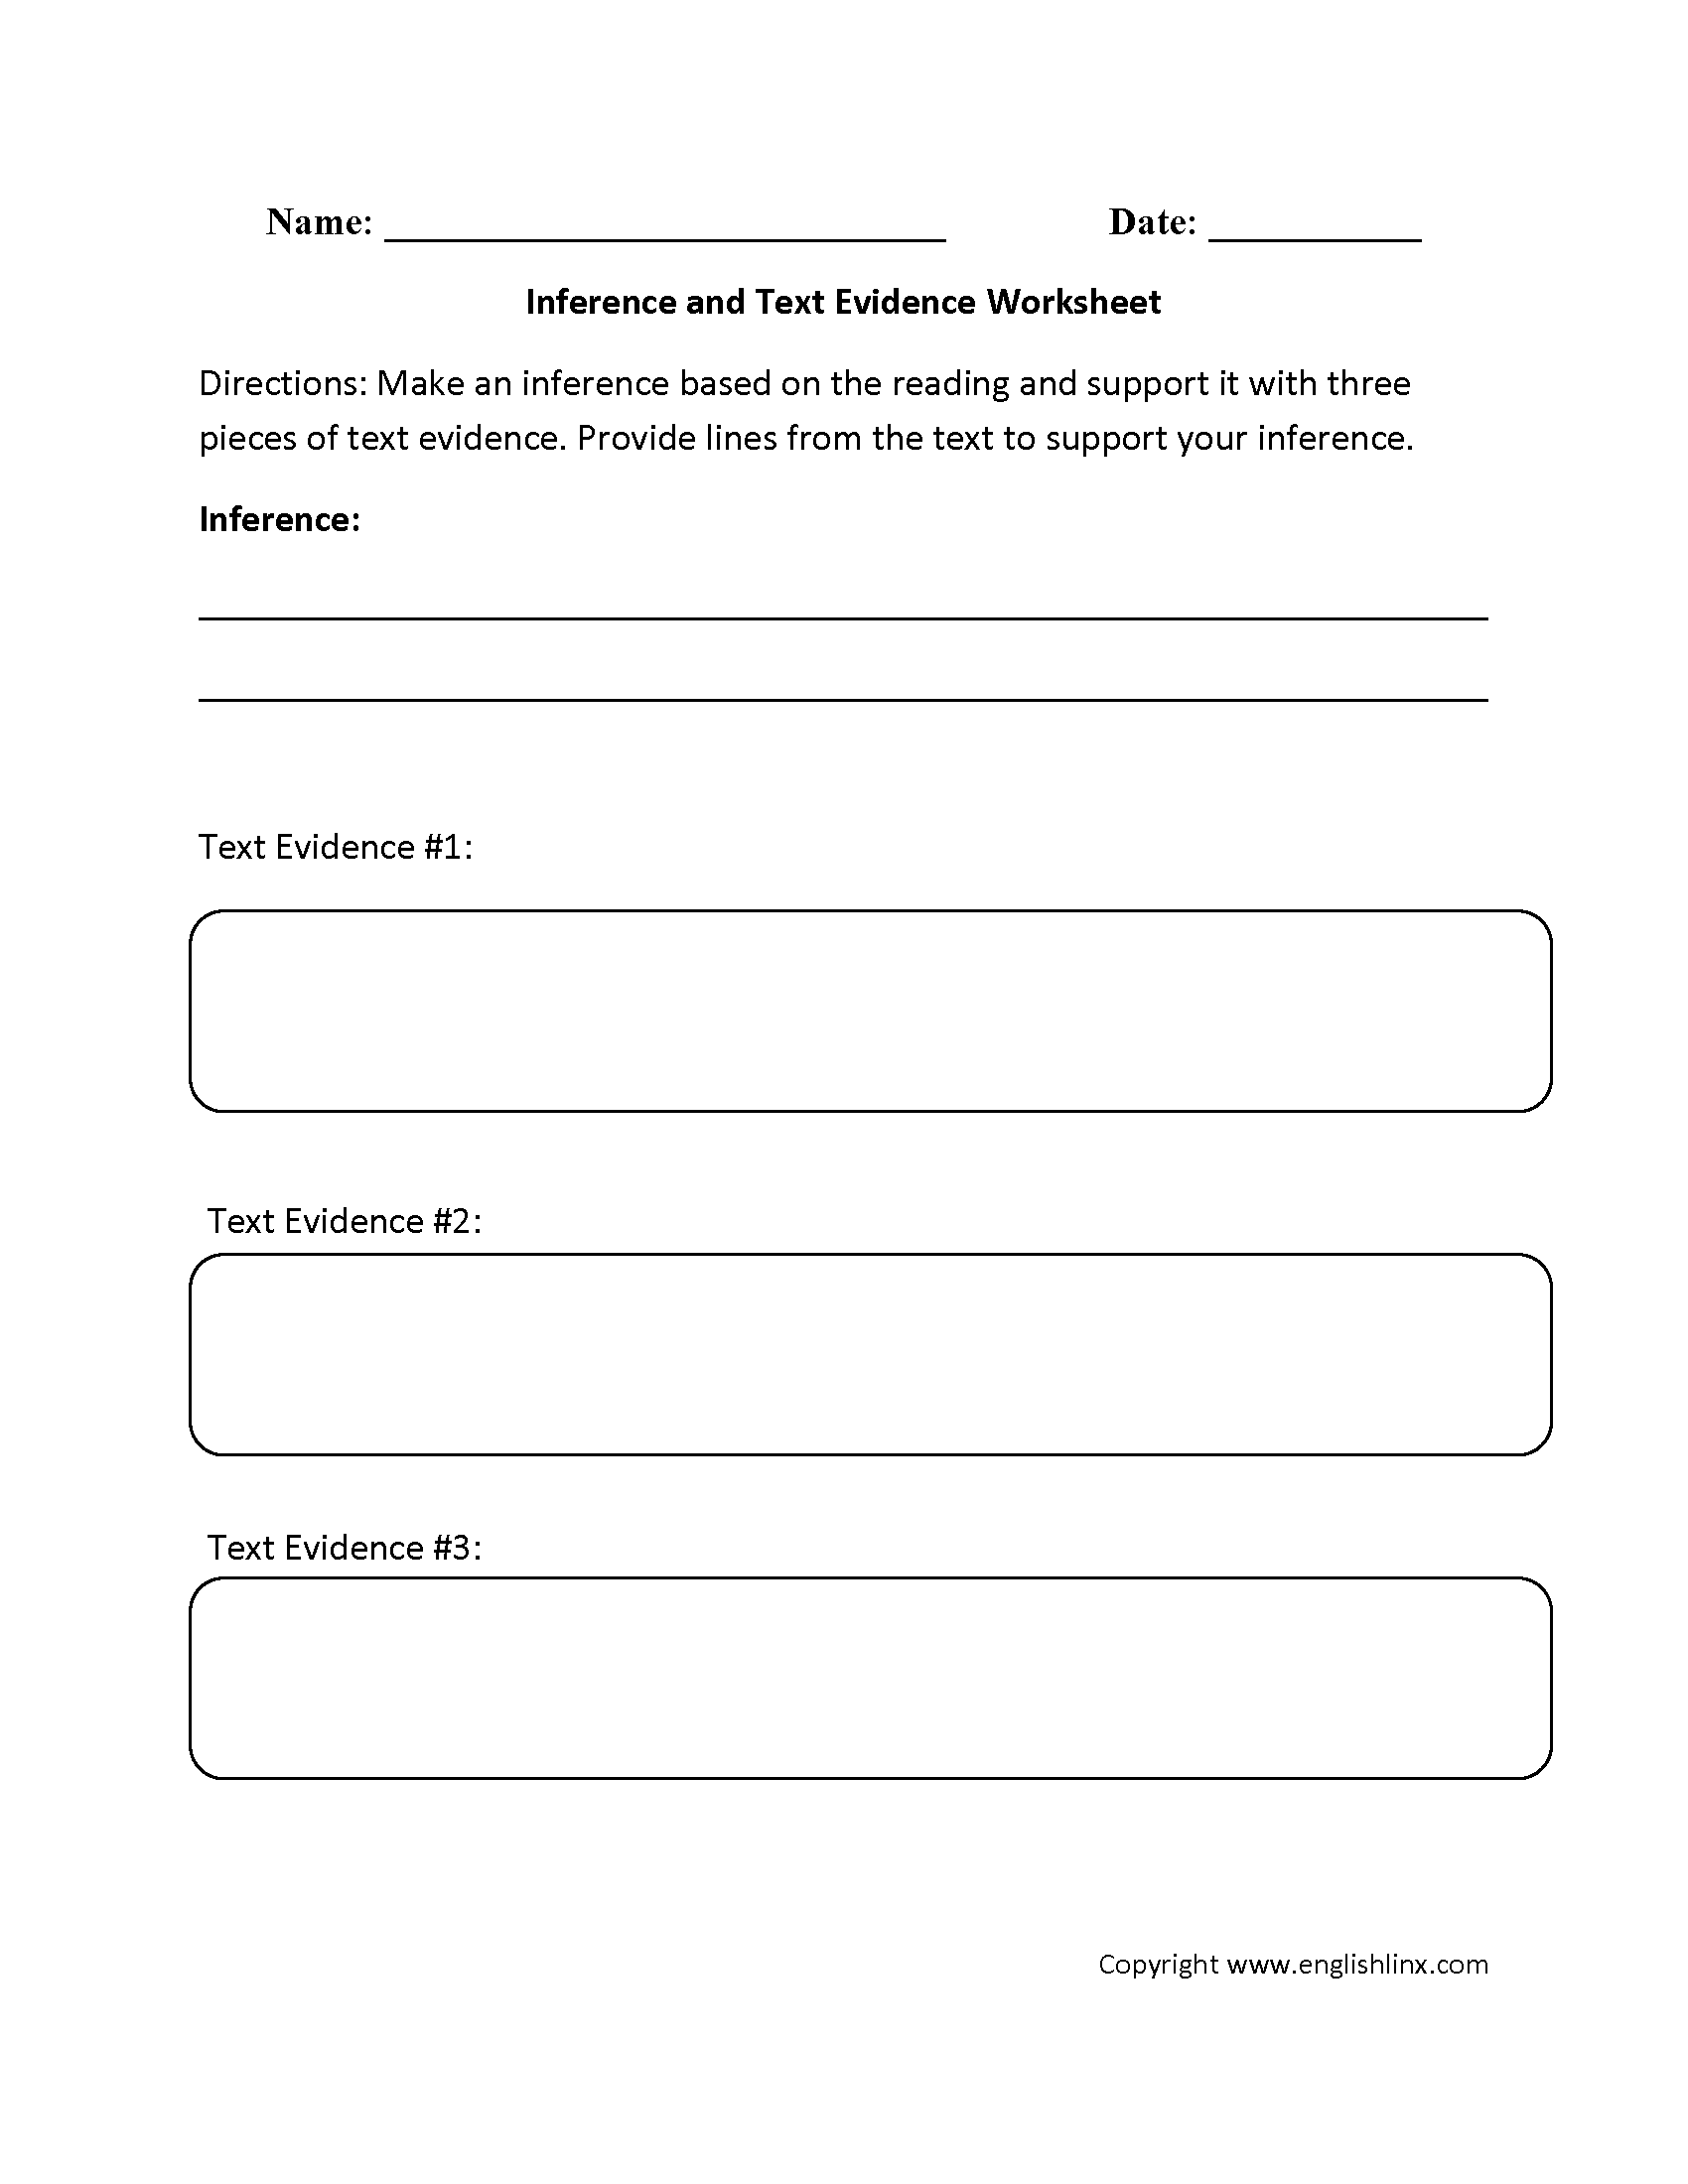 worksheet Citing Text Evidence Worksheets englishlinx com text evidence worksheets worksheets